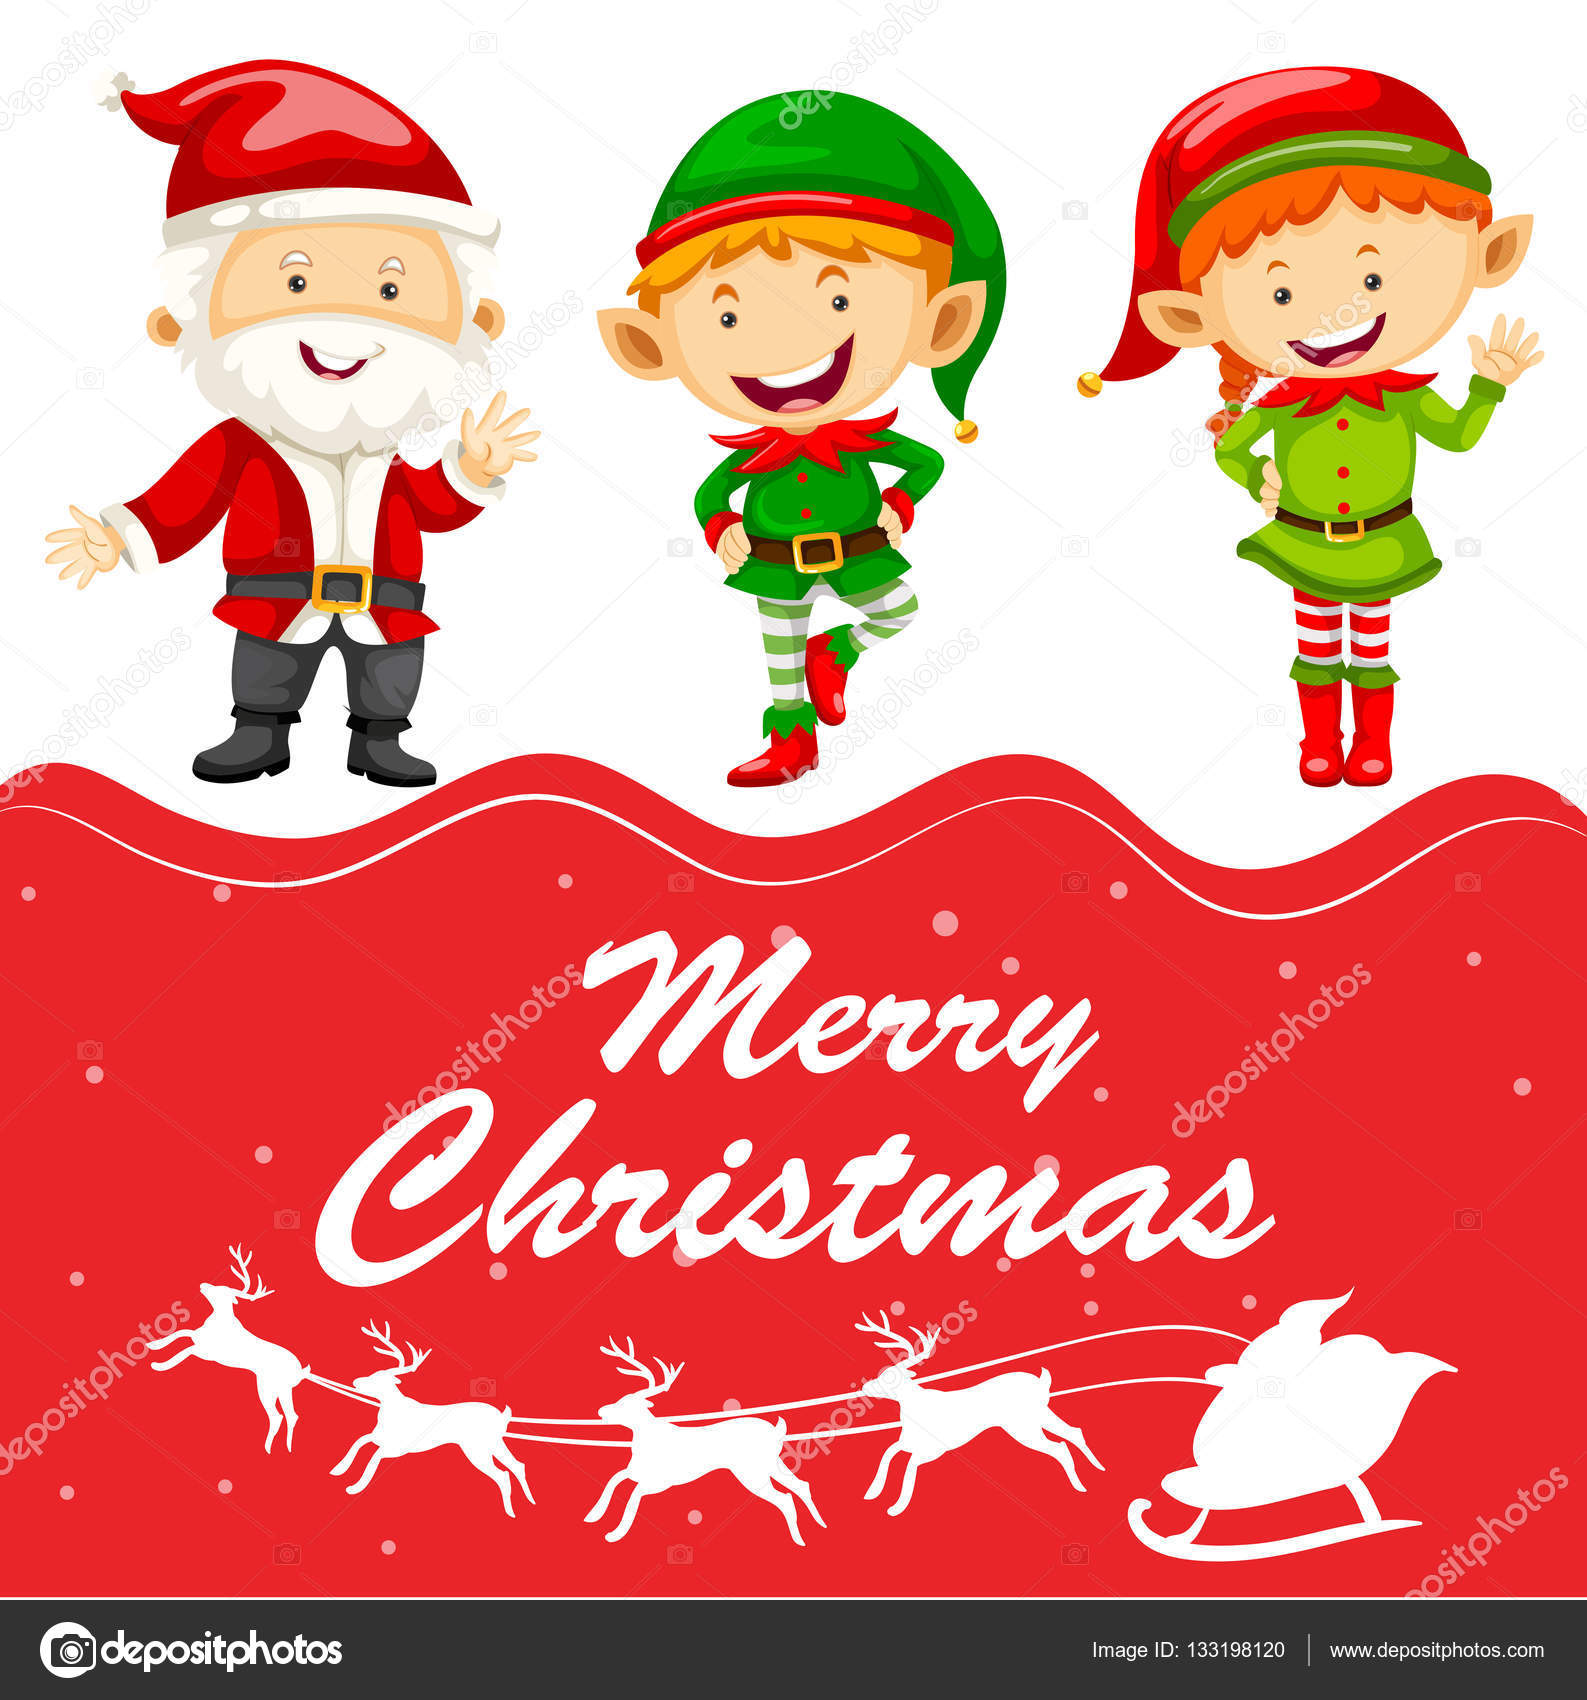 christmas card template with santa and elf illustration vector by interactimages - Elf Christmas Card